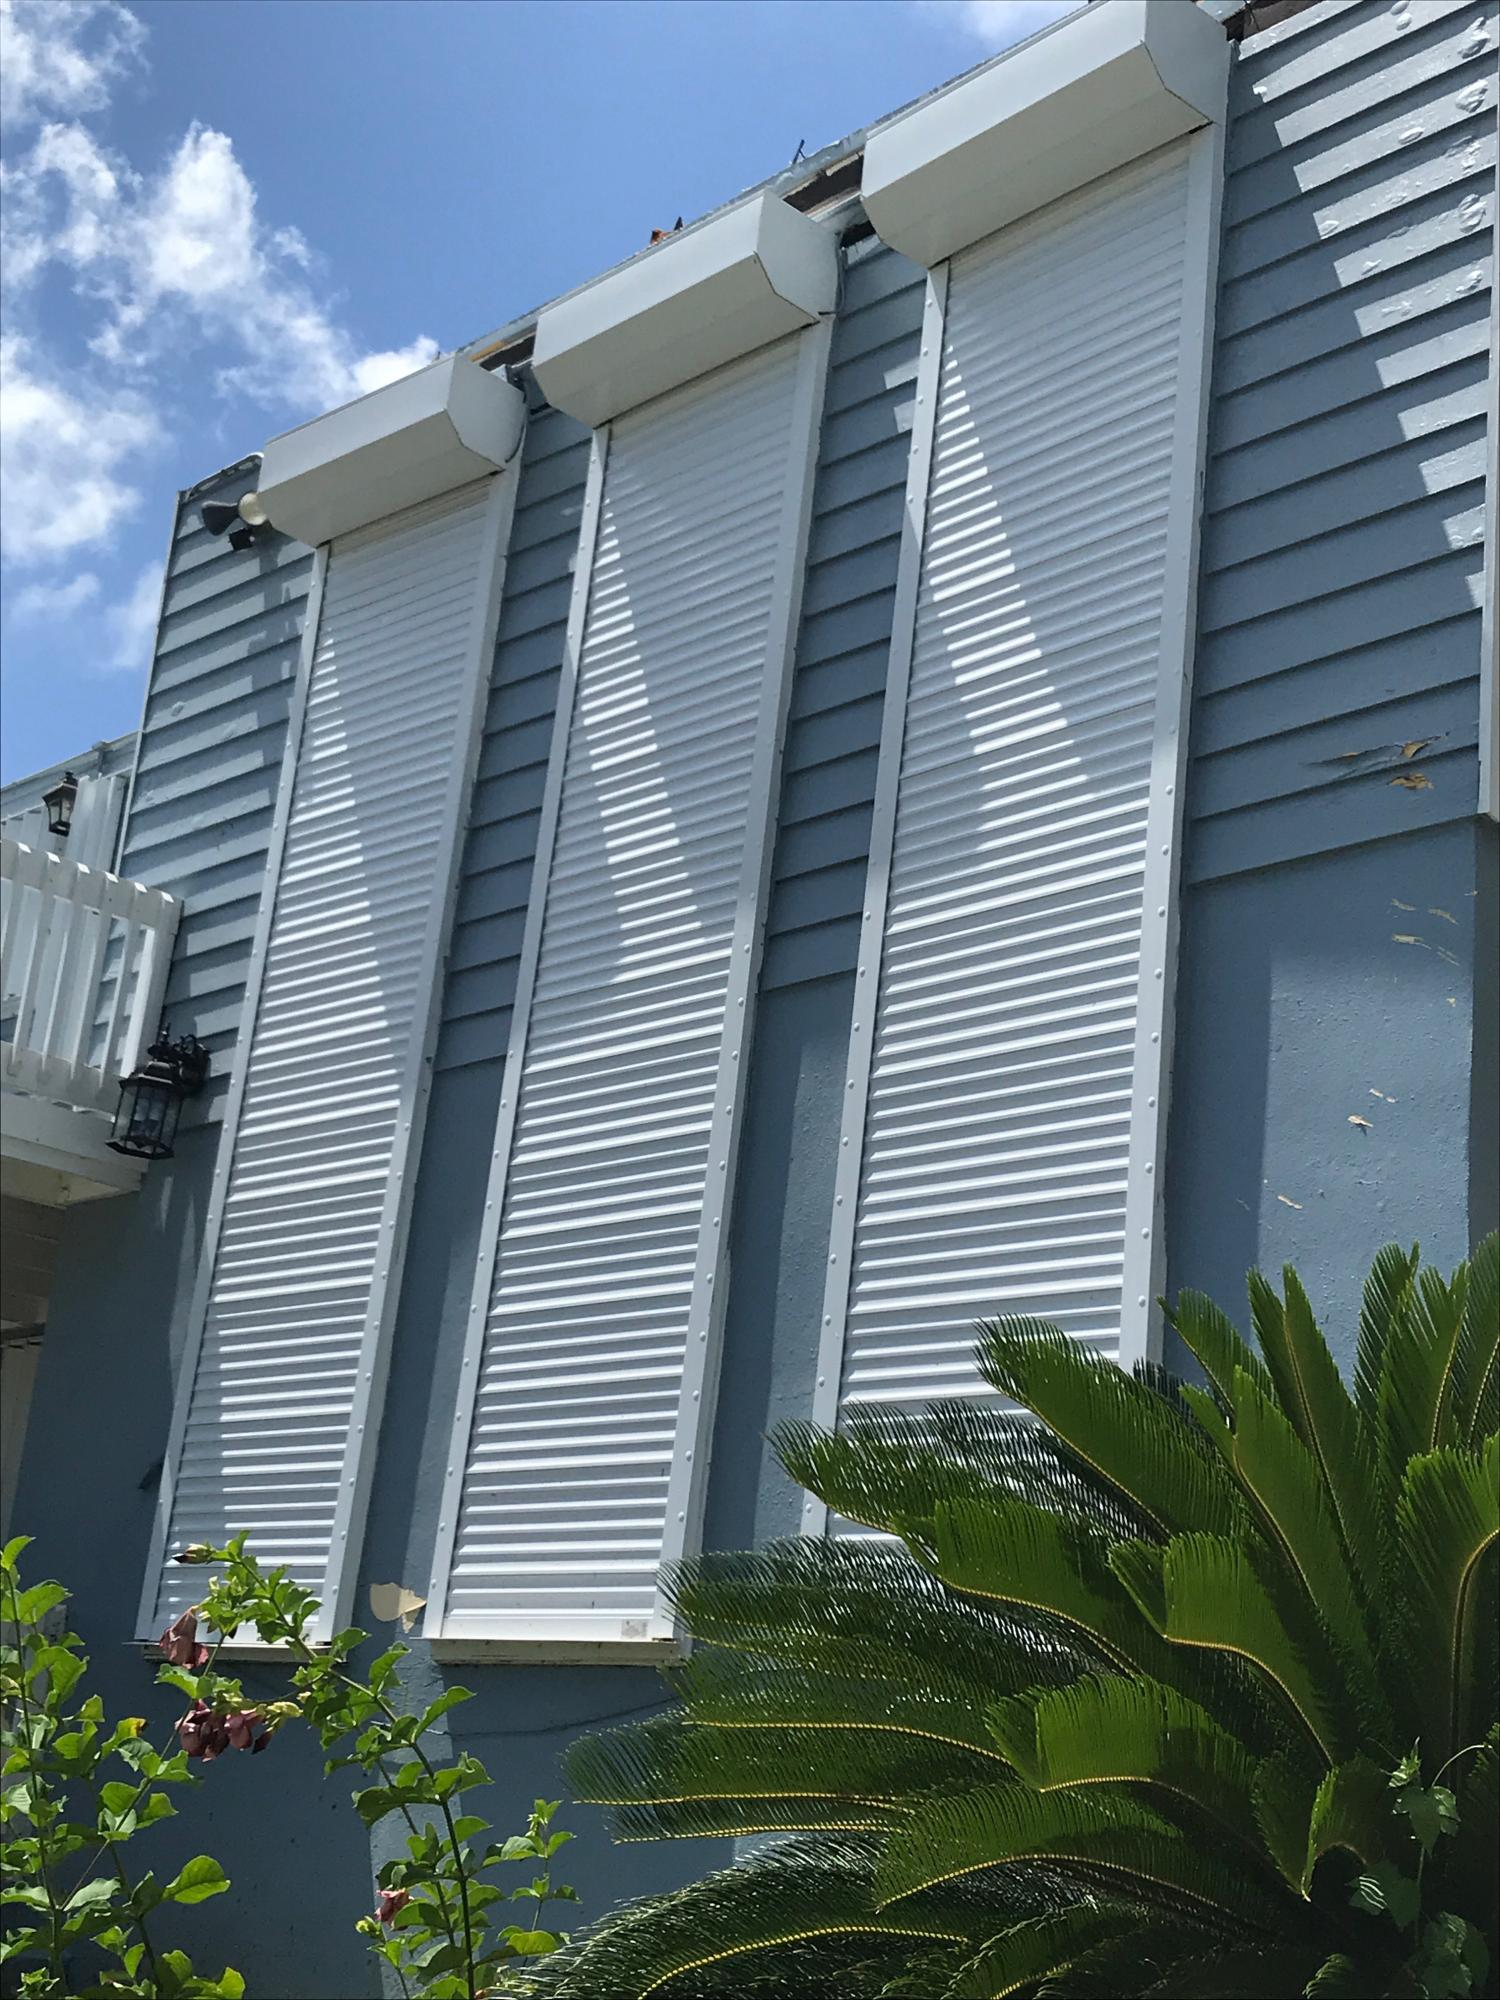 Shutters Remain in Place